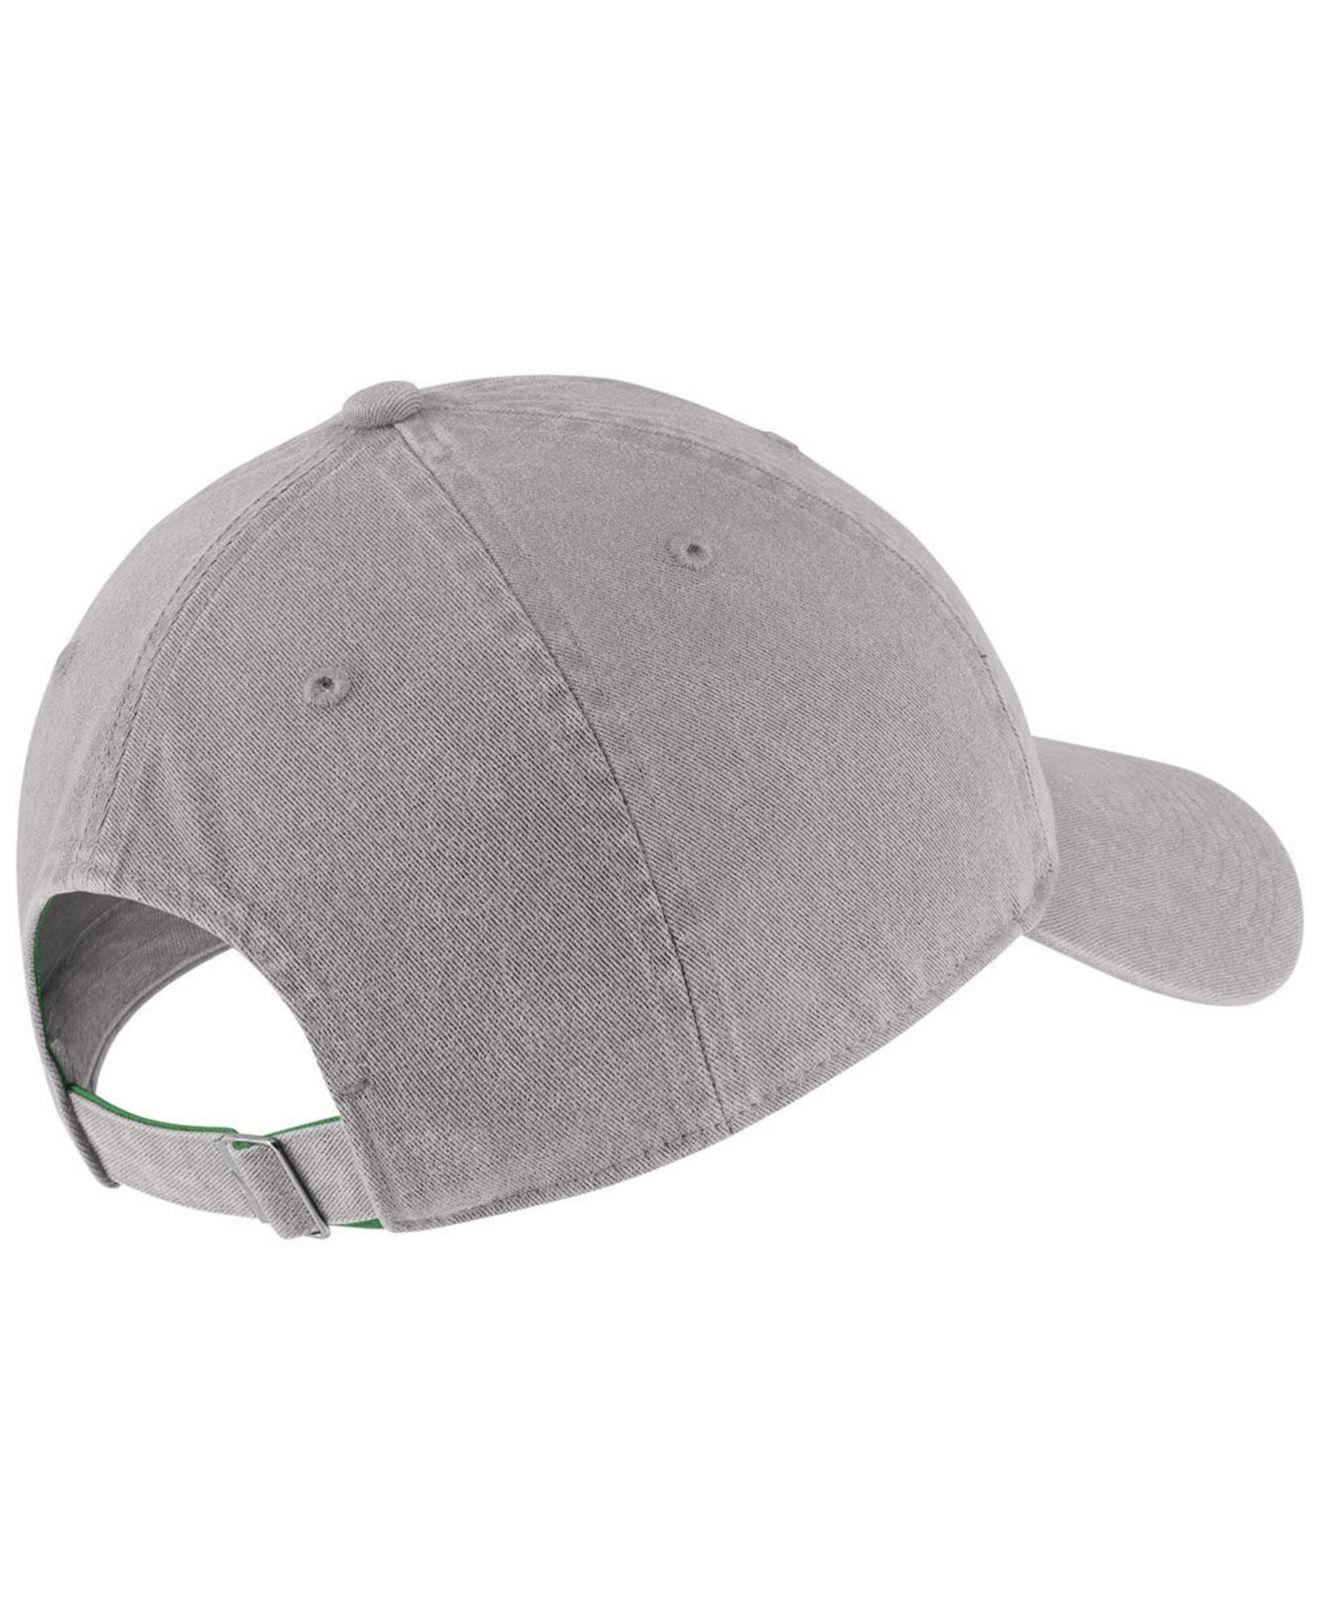 new product 3df51 efe7f Lyst - Nike Oregon Ducks H86 Washed Strapback Cap in Gray for Men